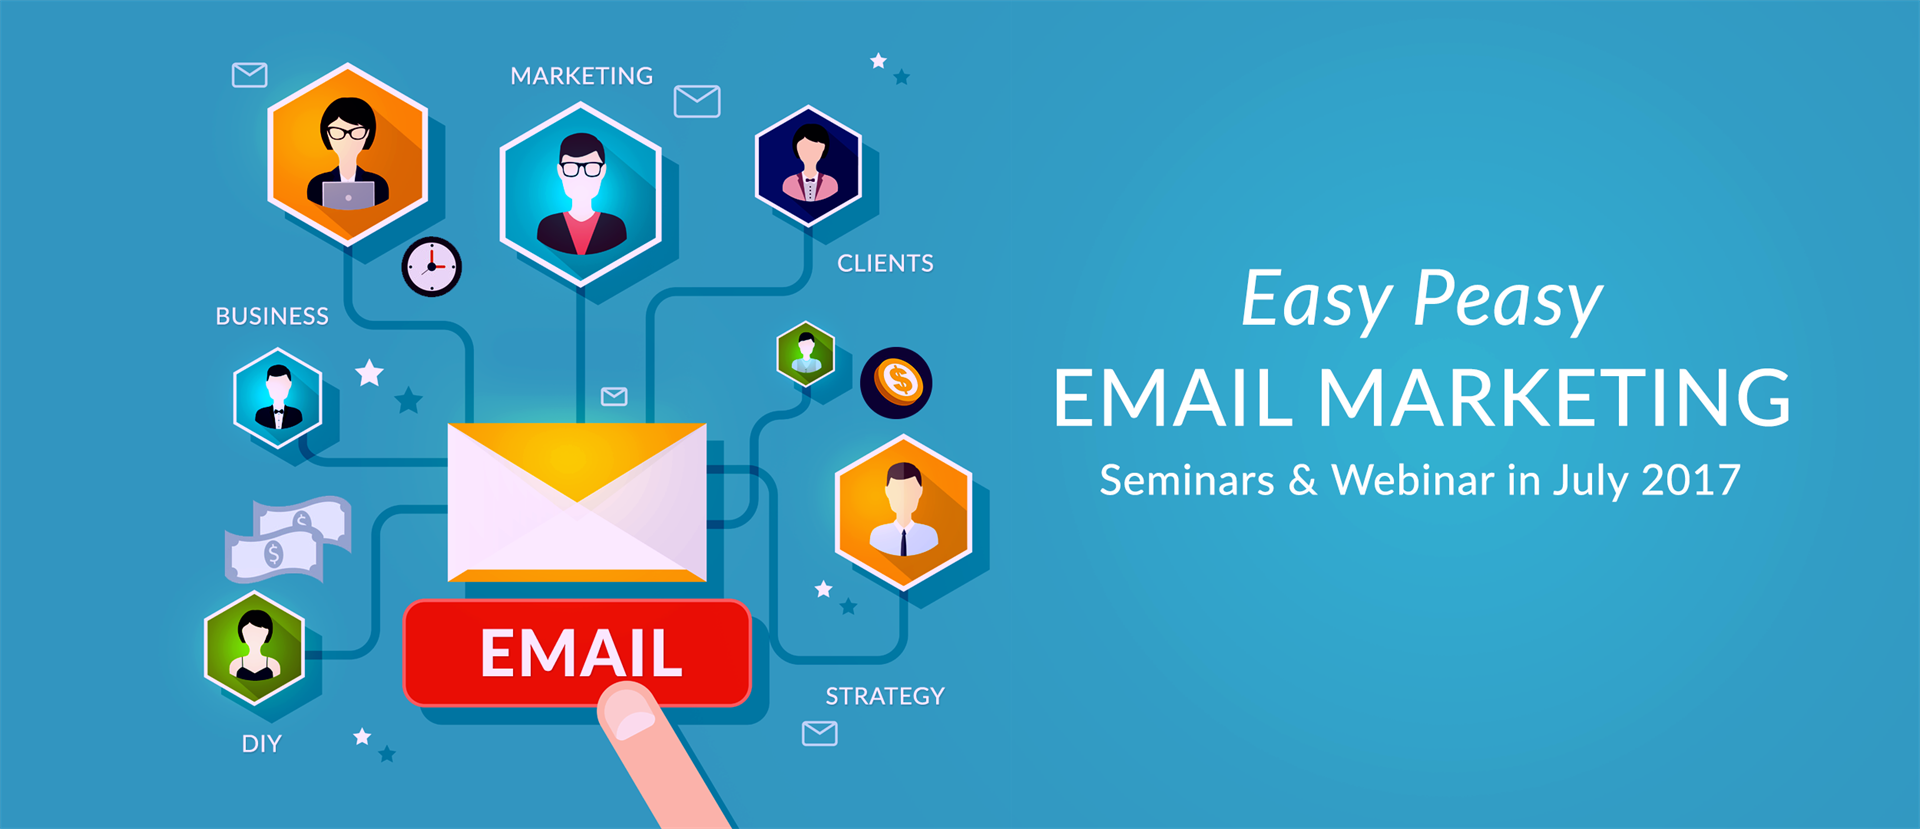 Easy Peasy Email Marketing Webinar for all members